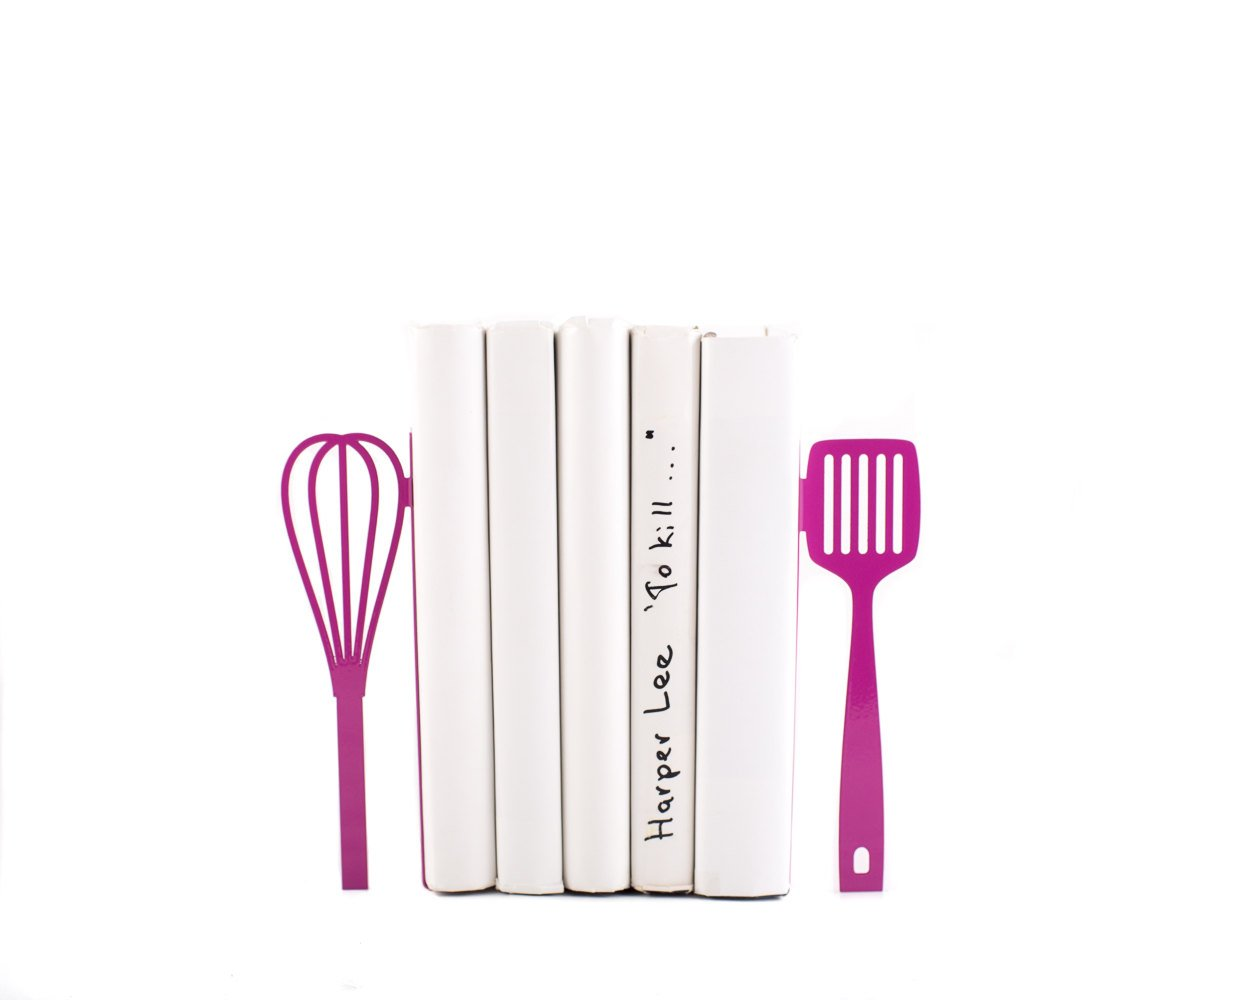 Metal Kitchen Bookends // Spatula and whisk Purple // functional modern kitchen decor // housewarming present // FREE WORLDWIDE SHIPPING // - Design Atelier Article